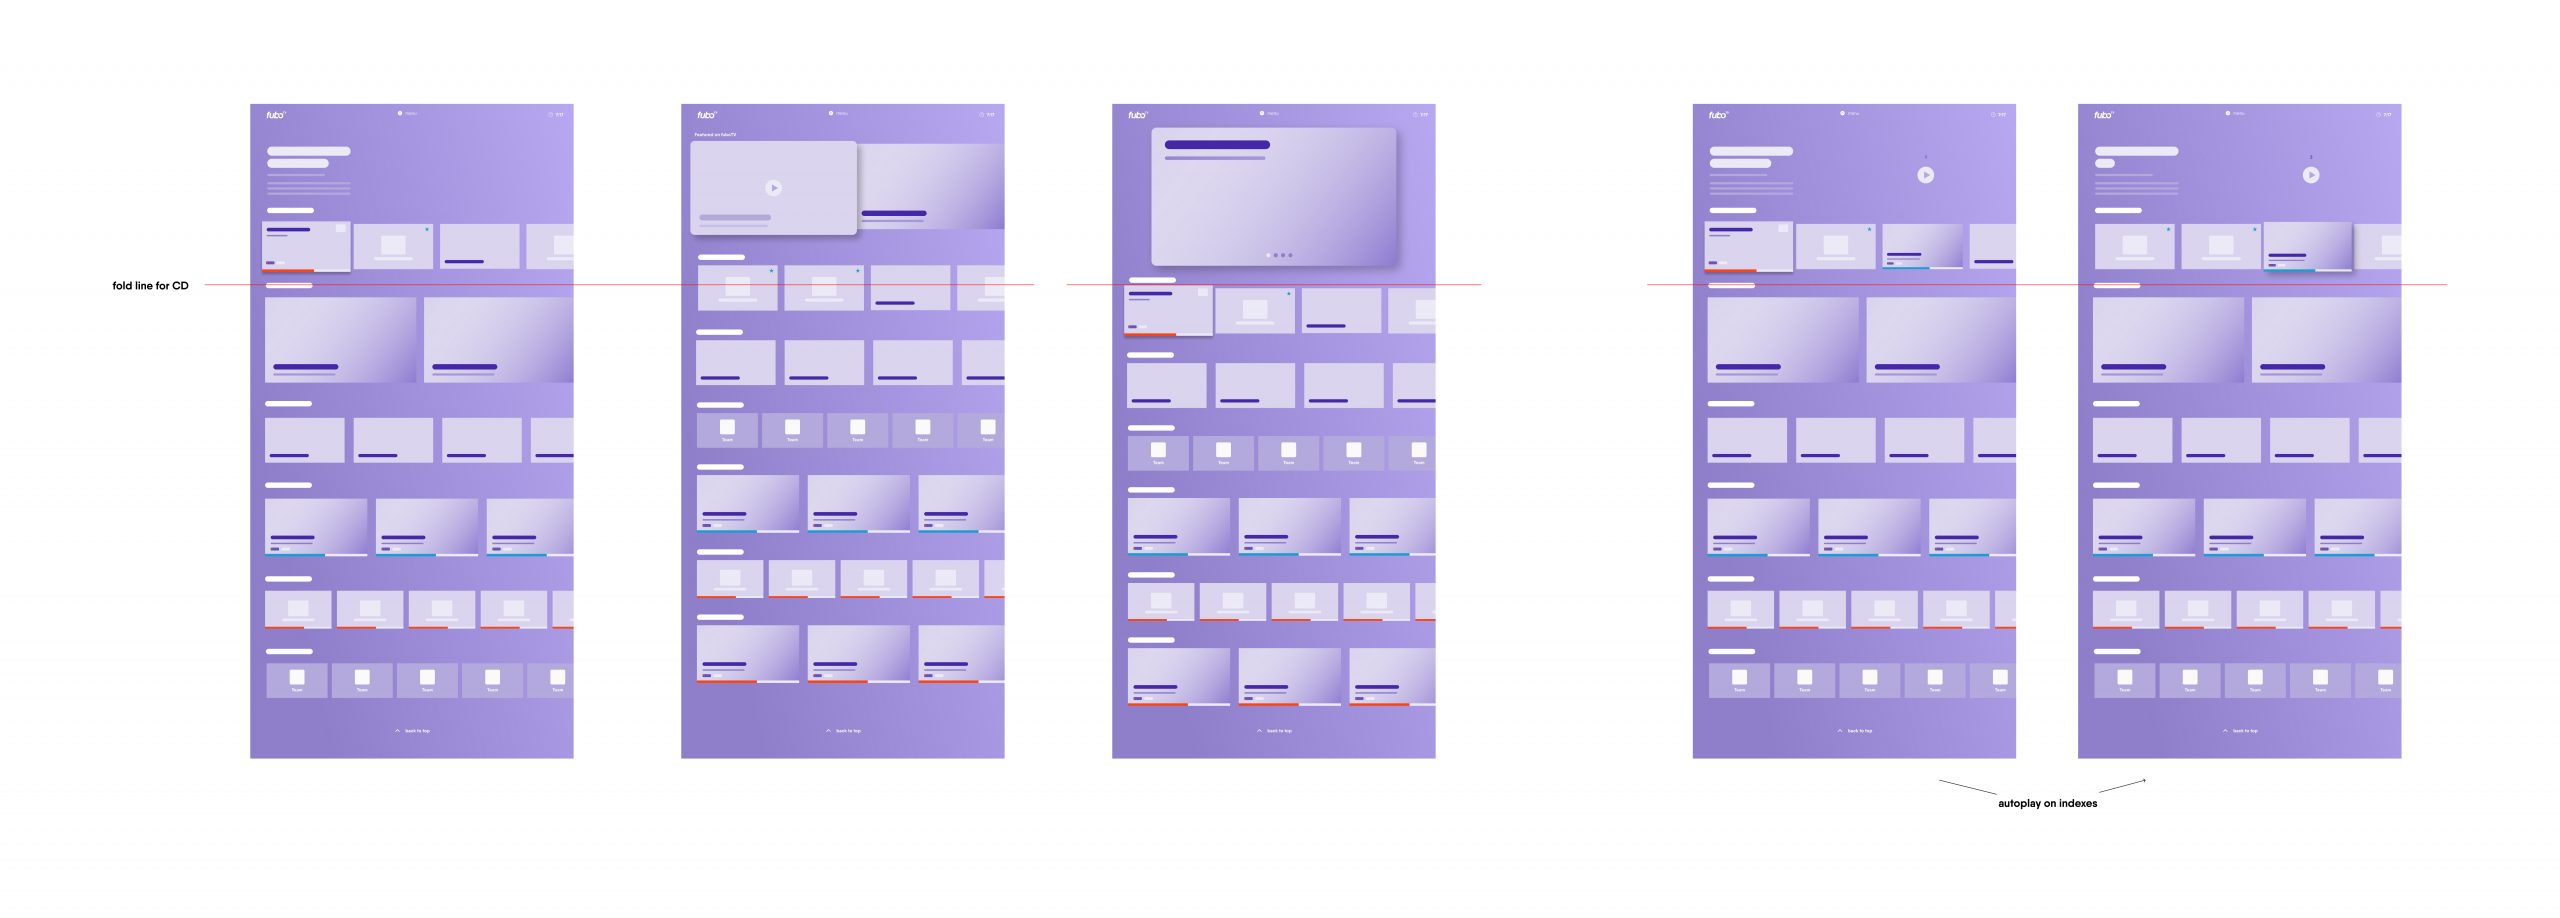 wireframes-for-homepage